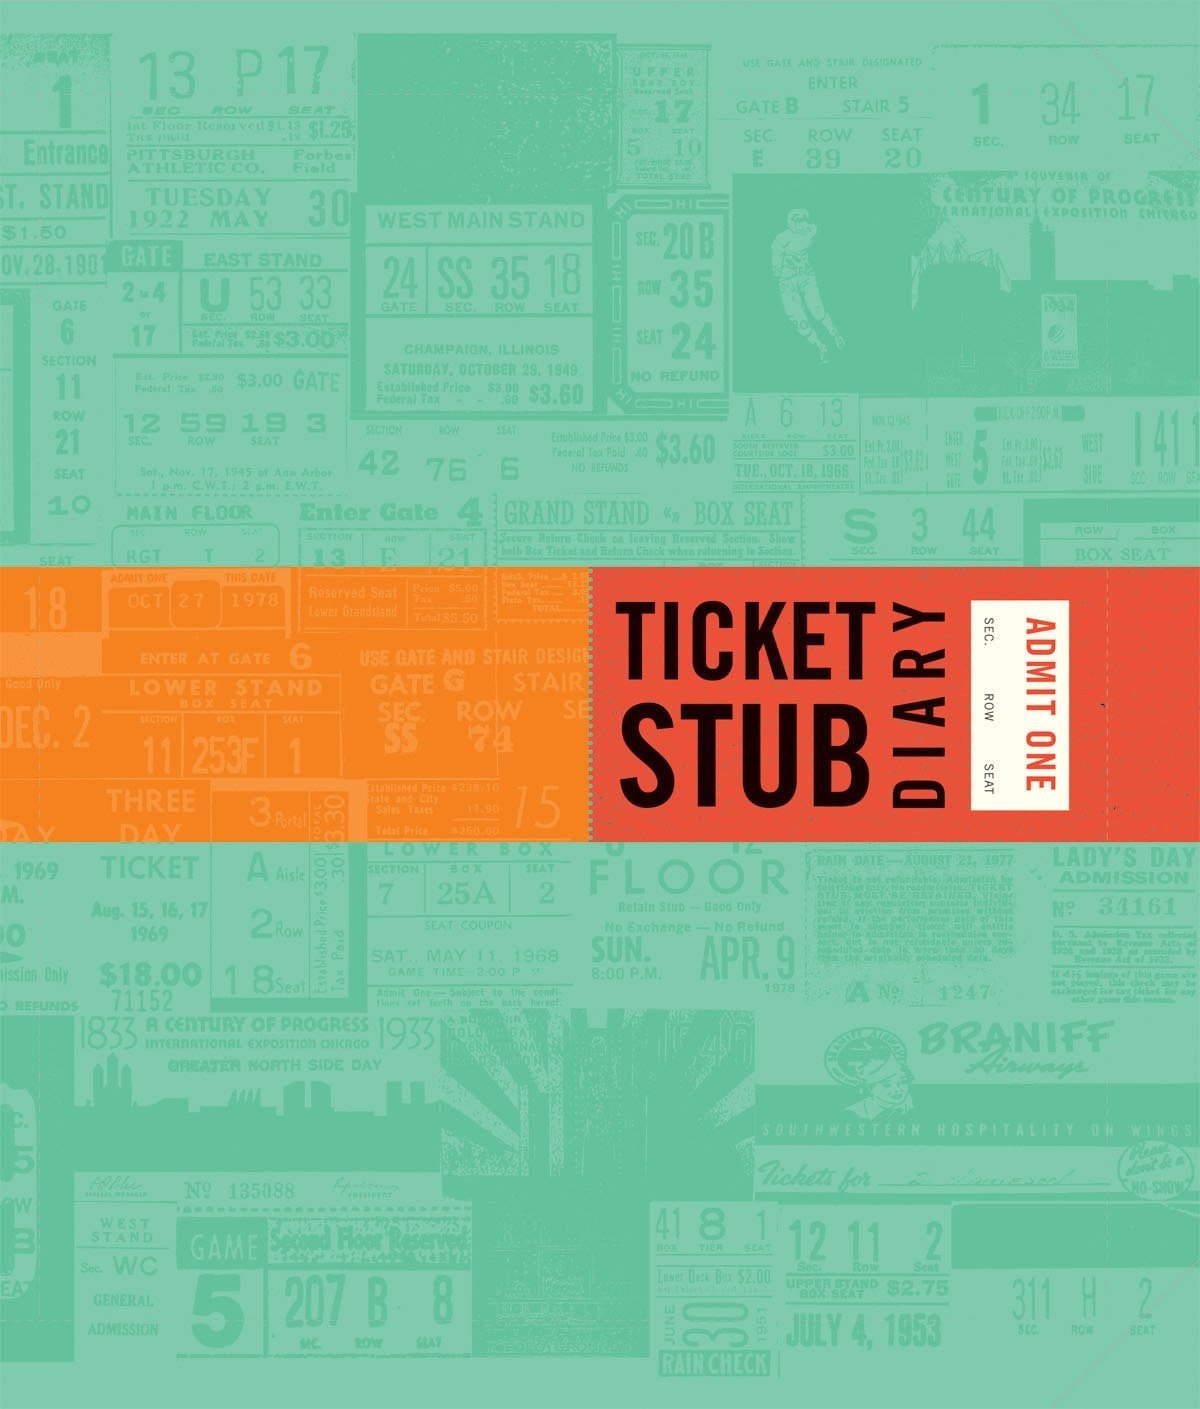 The ticket stub book